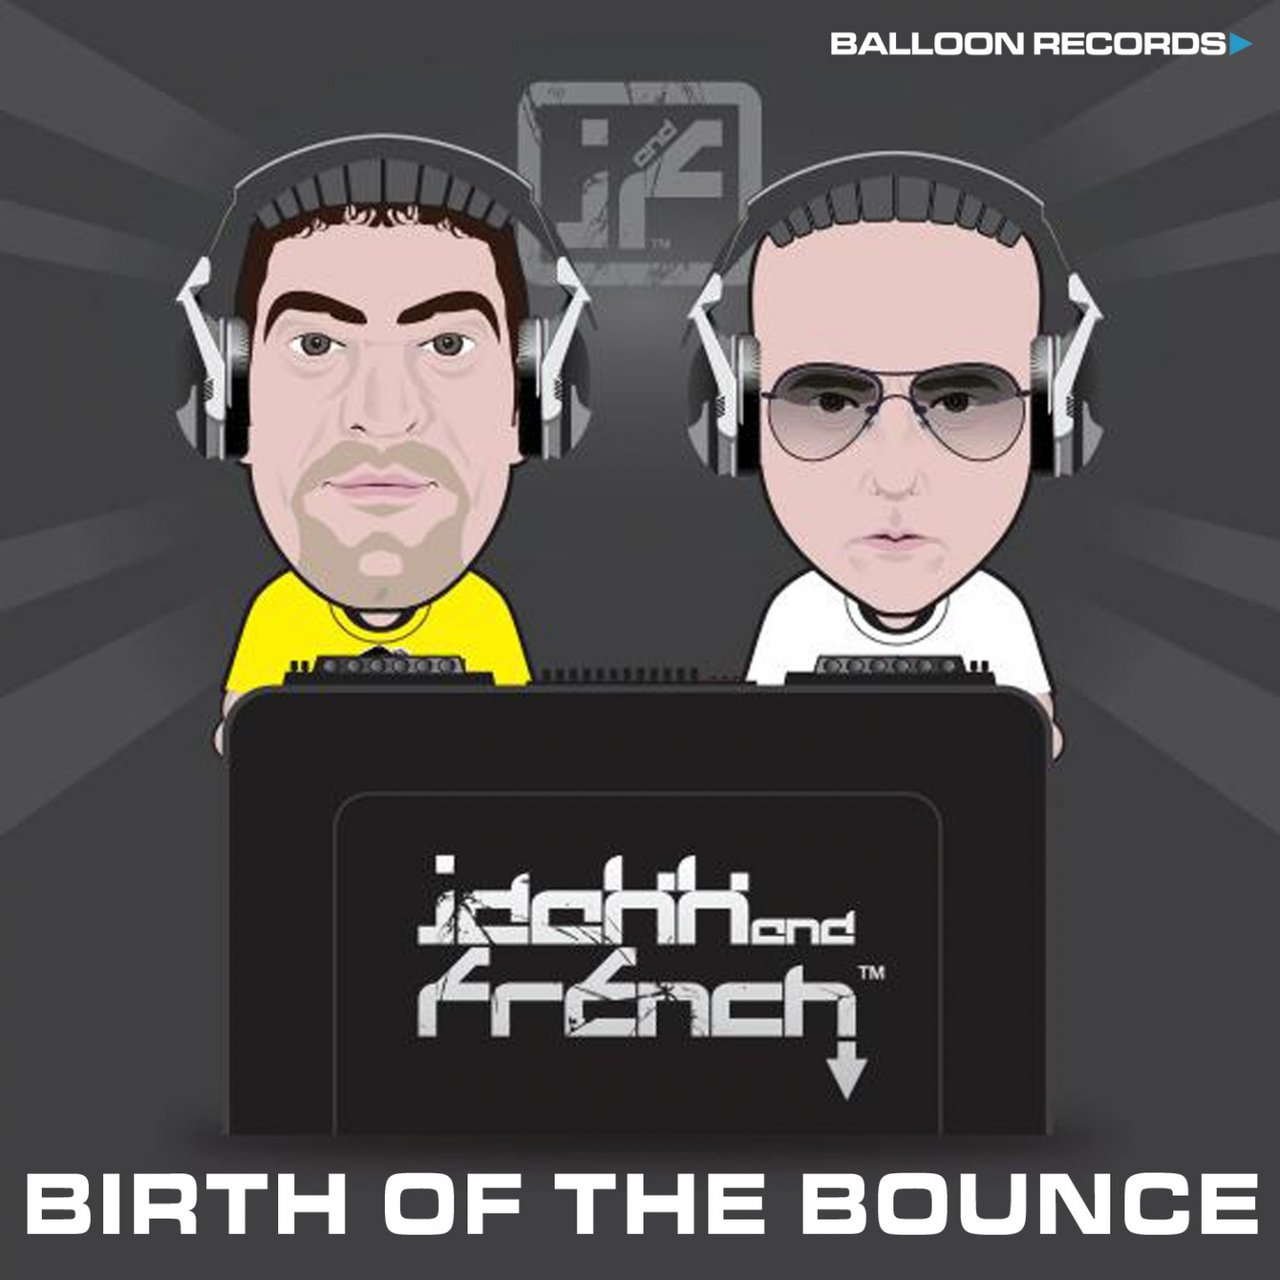 Birth of the Bounce